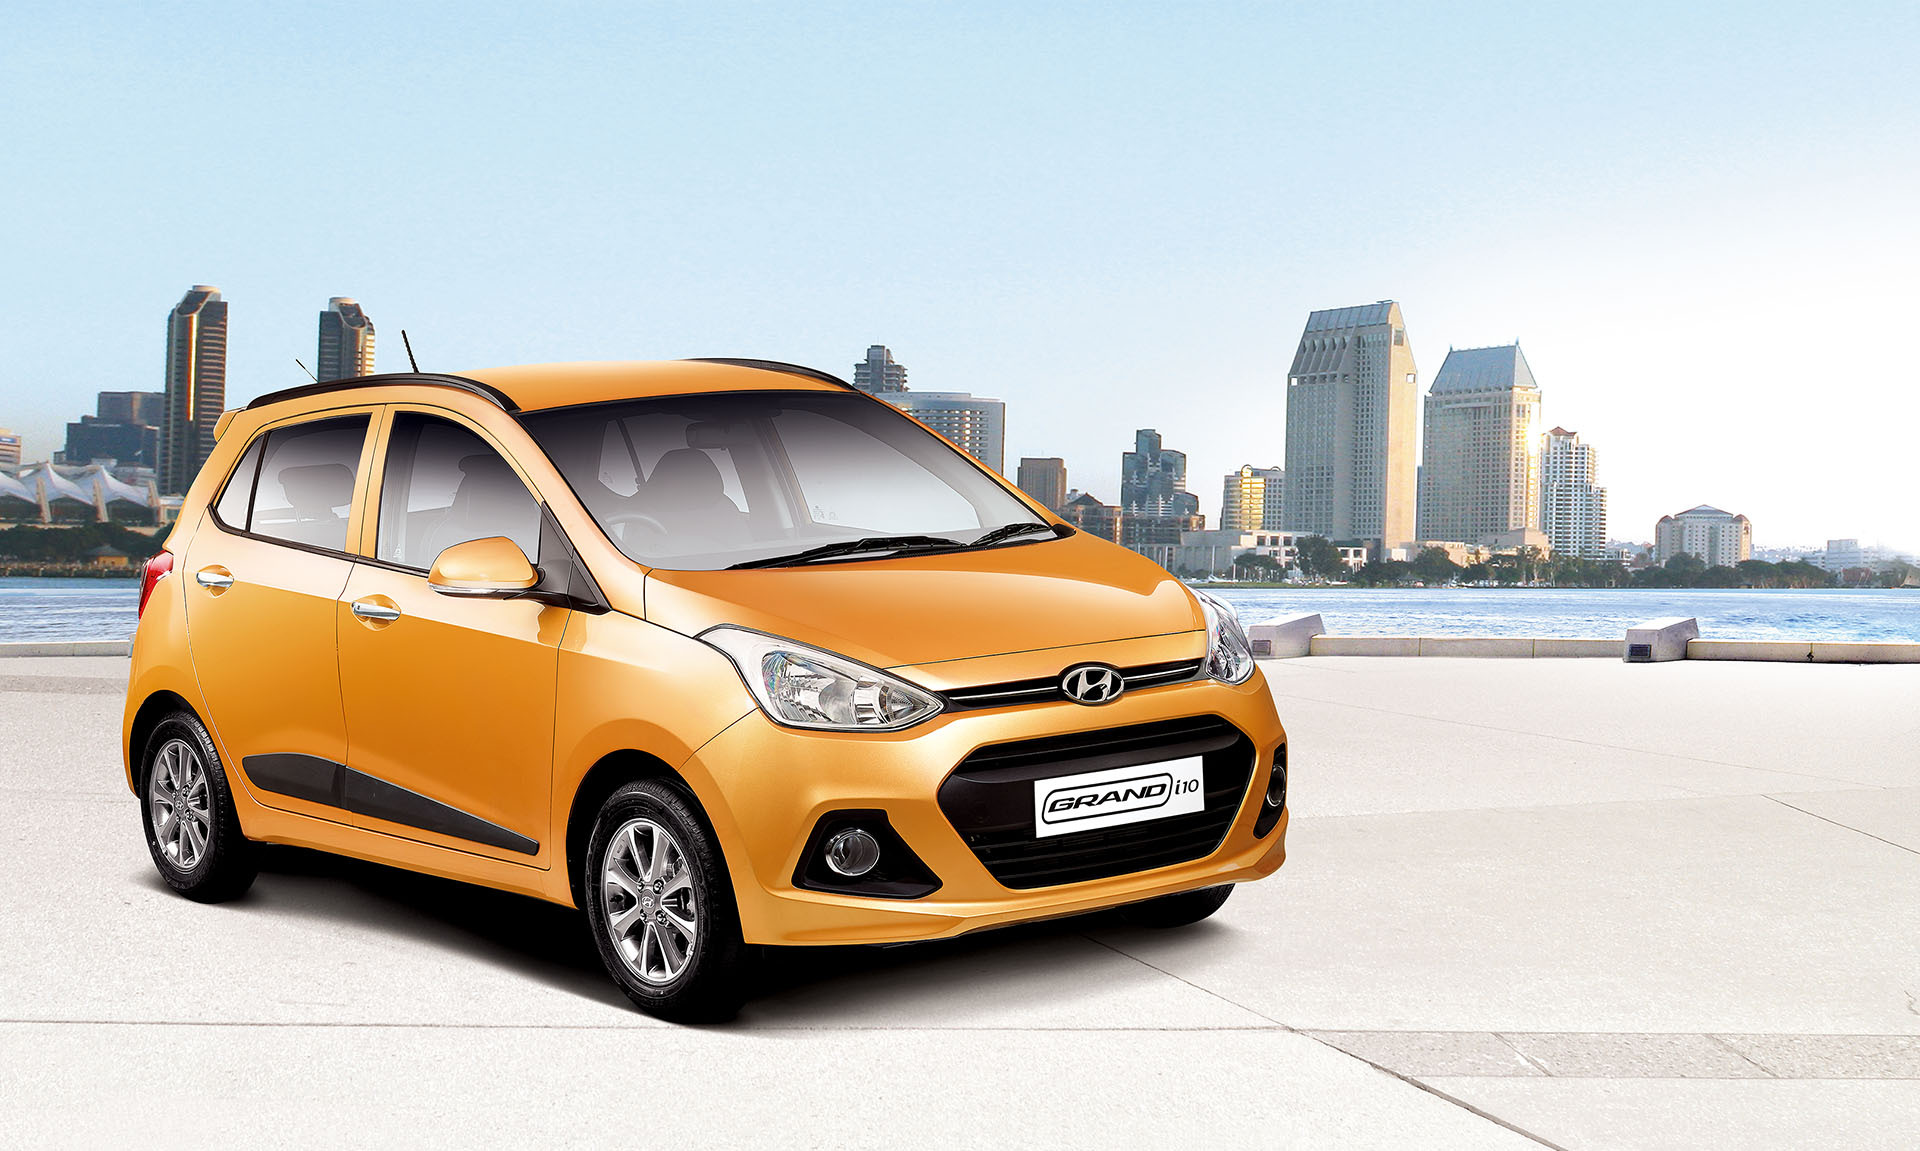 Hyundai Grand i10 Exteriors Top View